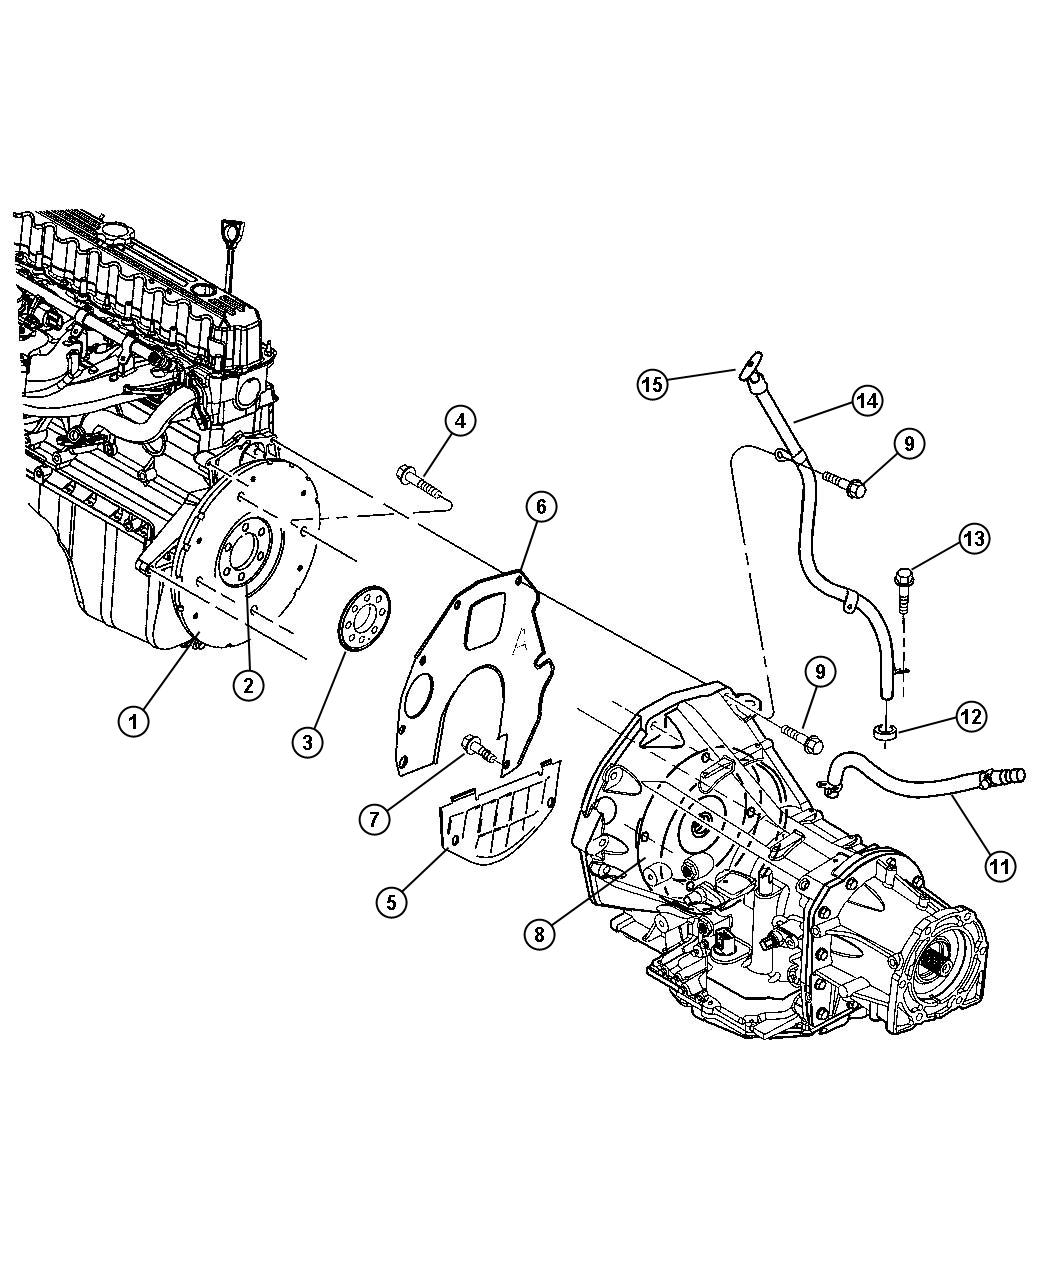 2003 Jeep Wrangler Parts Diagram Rear Best Secret Wiring Driveline Imageresizertool Com Airbag 2002 Engine